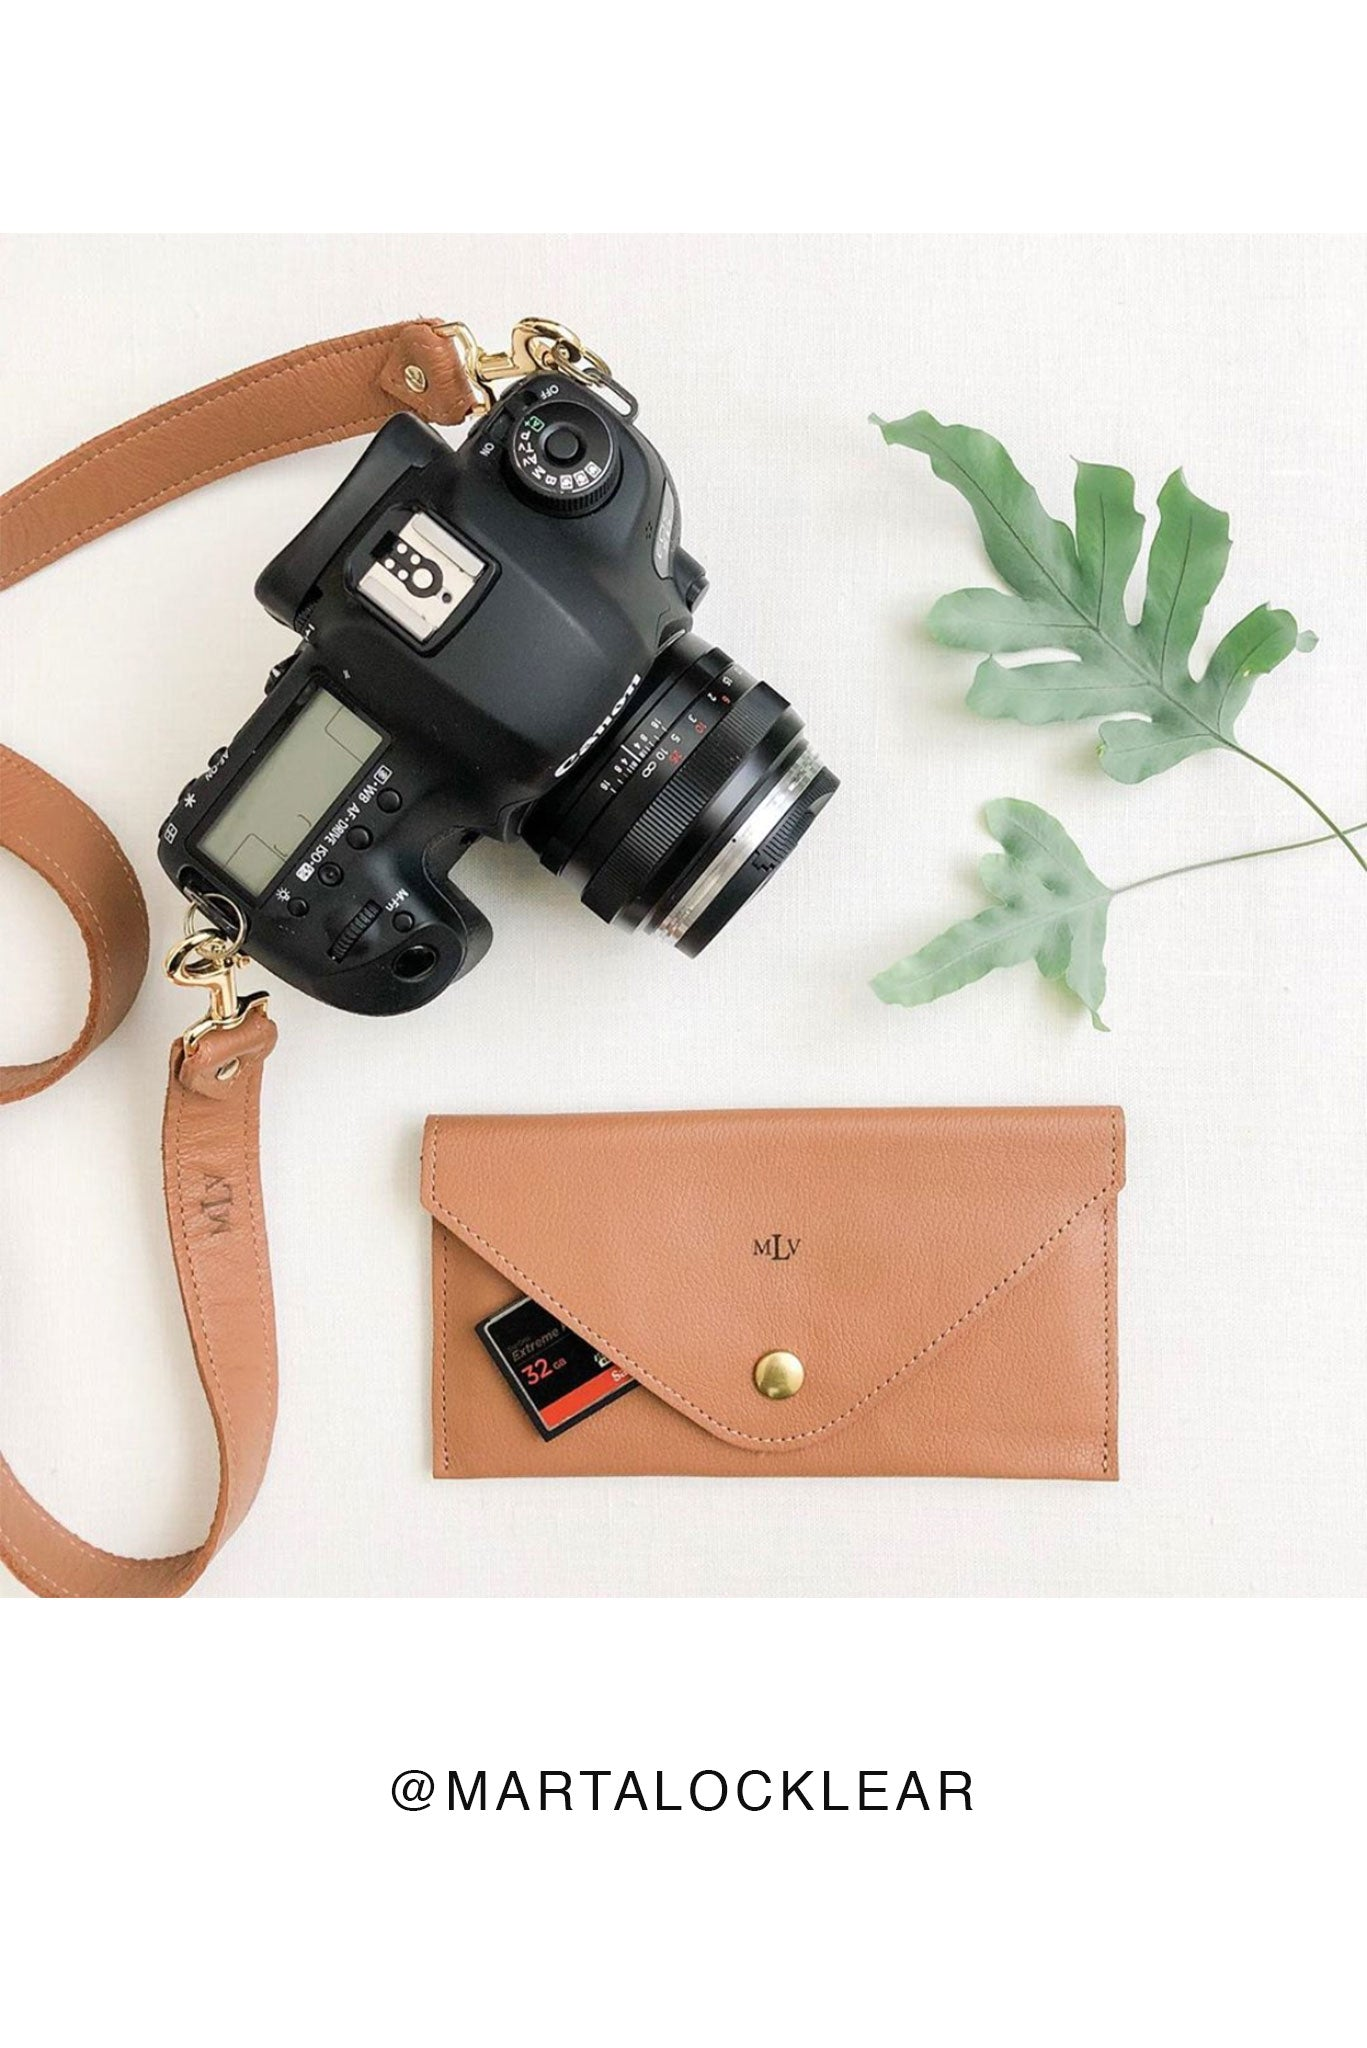 FOTO | Saddle Memory Card Wallet - a chestnut pebbled leather SD and Compact Flash Memory Card holder that coordinates with our Saddle Designer Fotostrap camera strap and can be personalized with a monogram or business logo, making it the perfect gift for the photographer in your life!